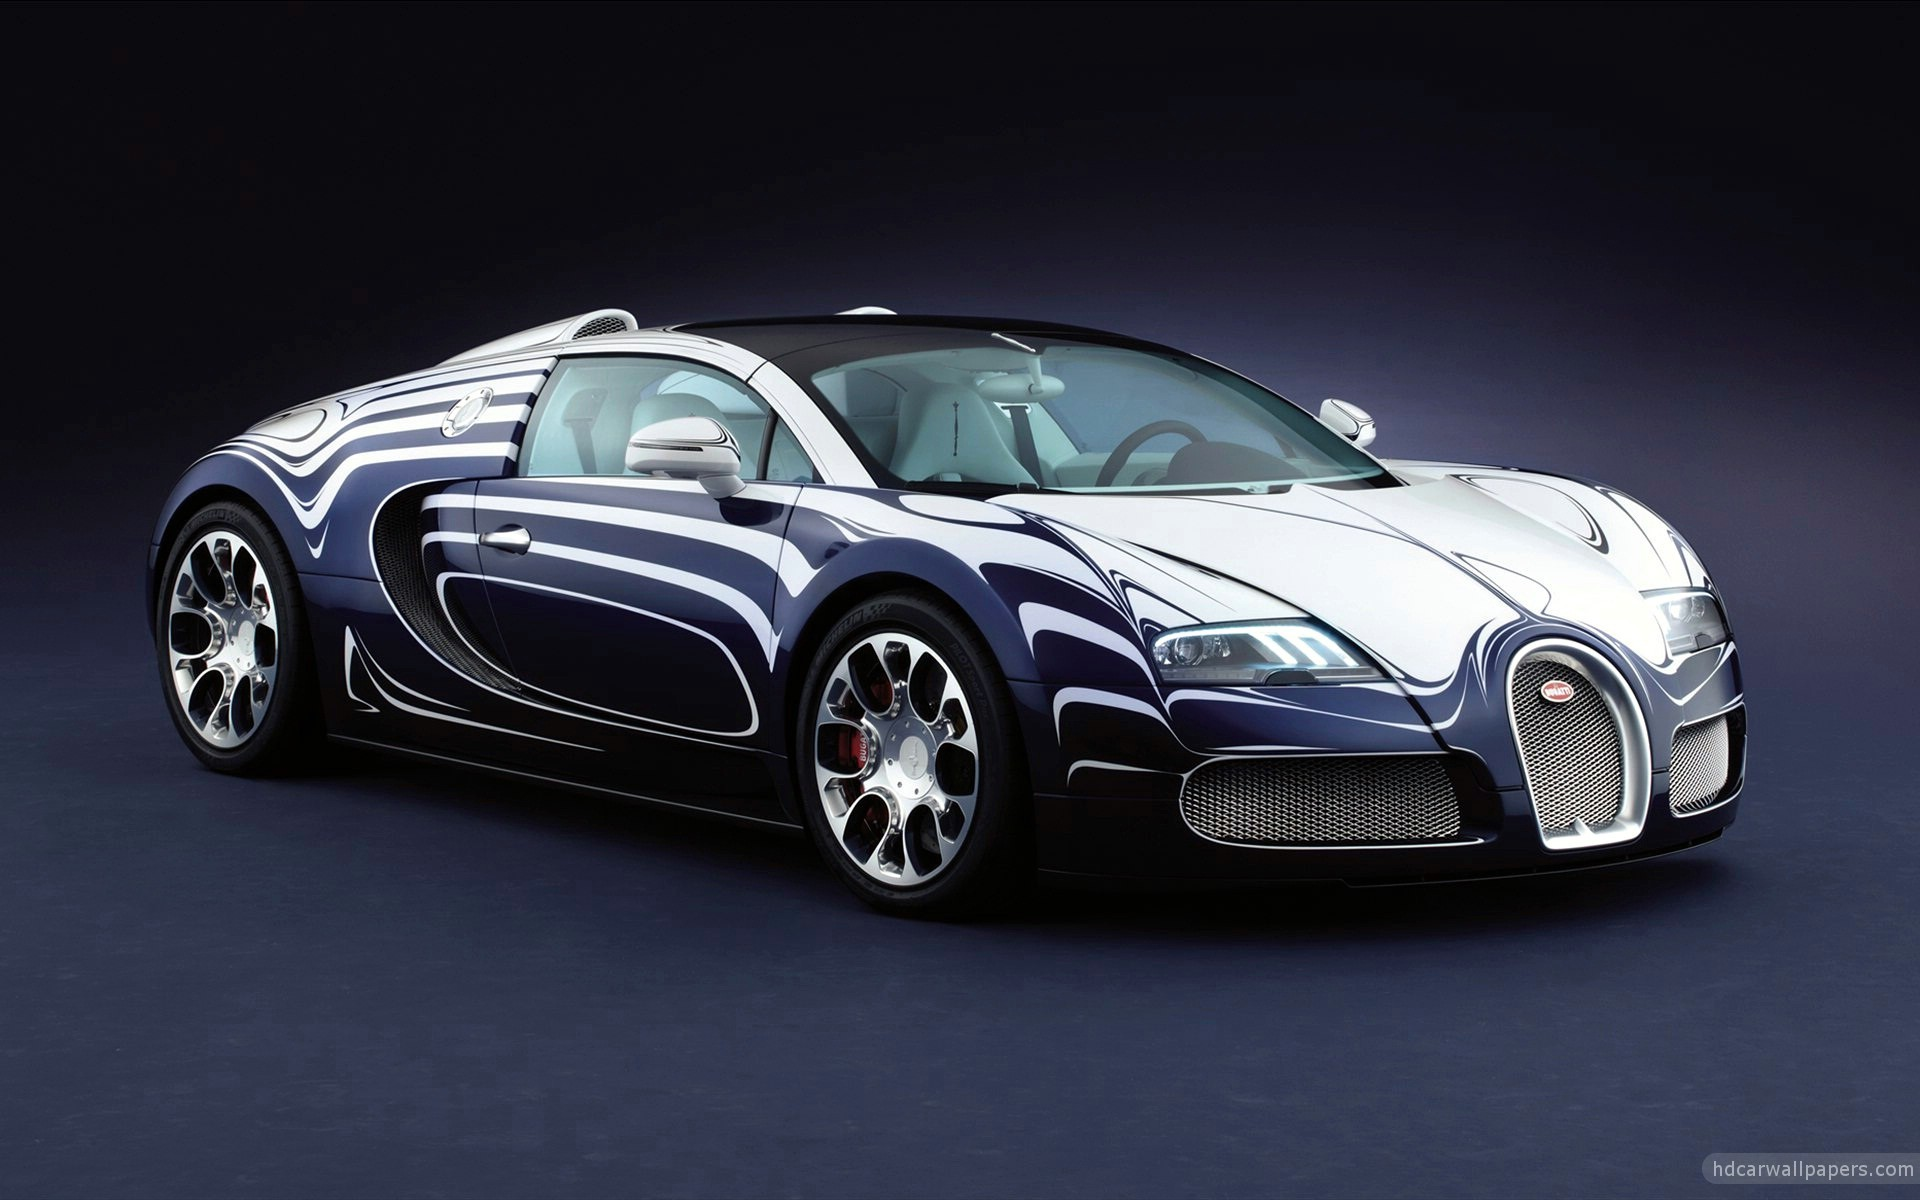 Wallpaper Bugatti Veyron Grand Sport: 2011 Bugatti Veyron Grand Sport Wallpaper